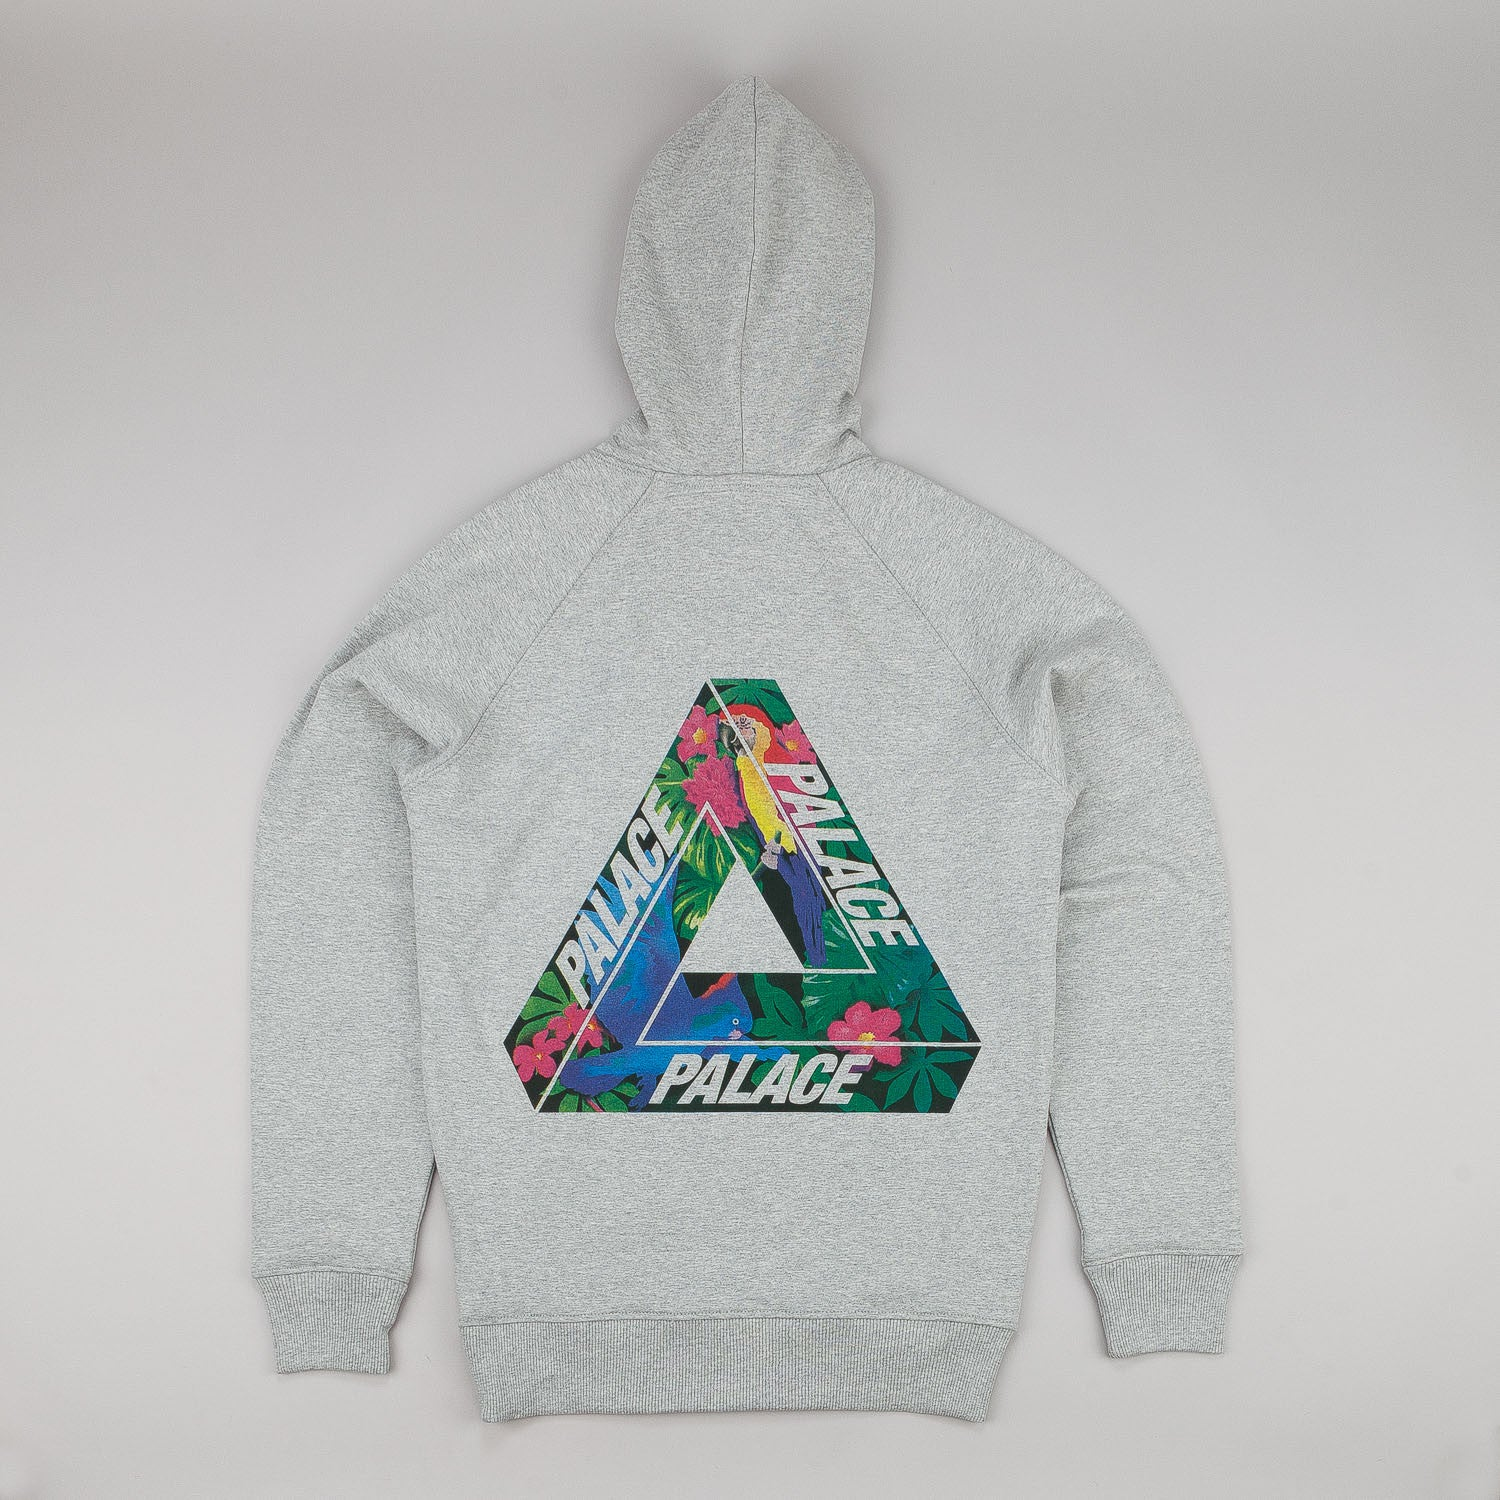 Palace Tri-Wild Hooded Sweatshirt - Grey